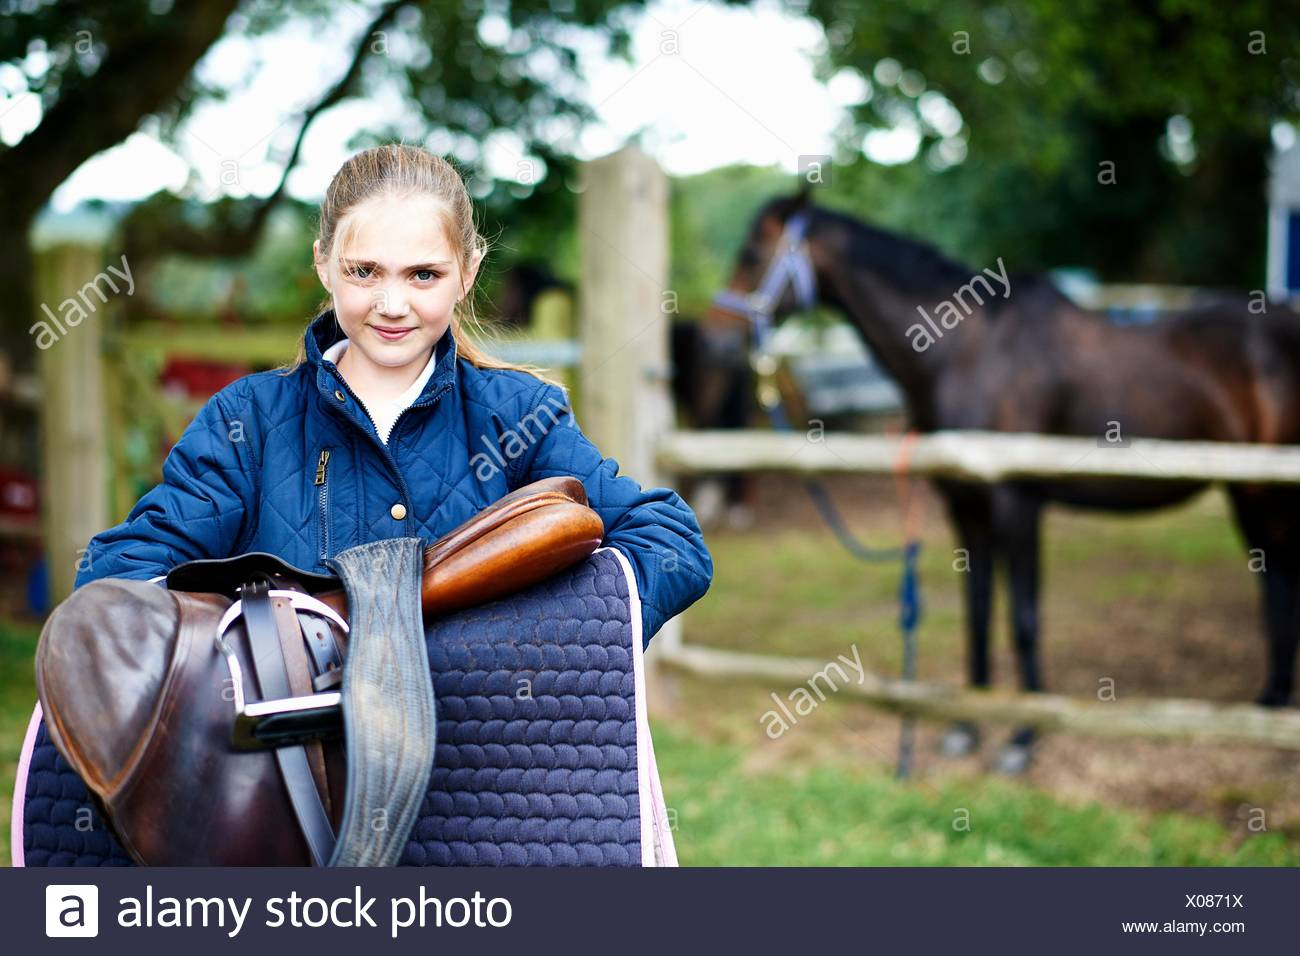 Girl horseback rider carrying saddle - Stock Image